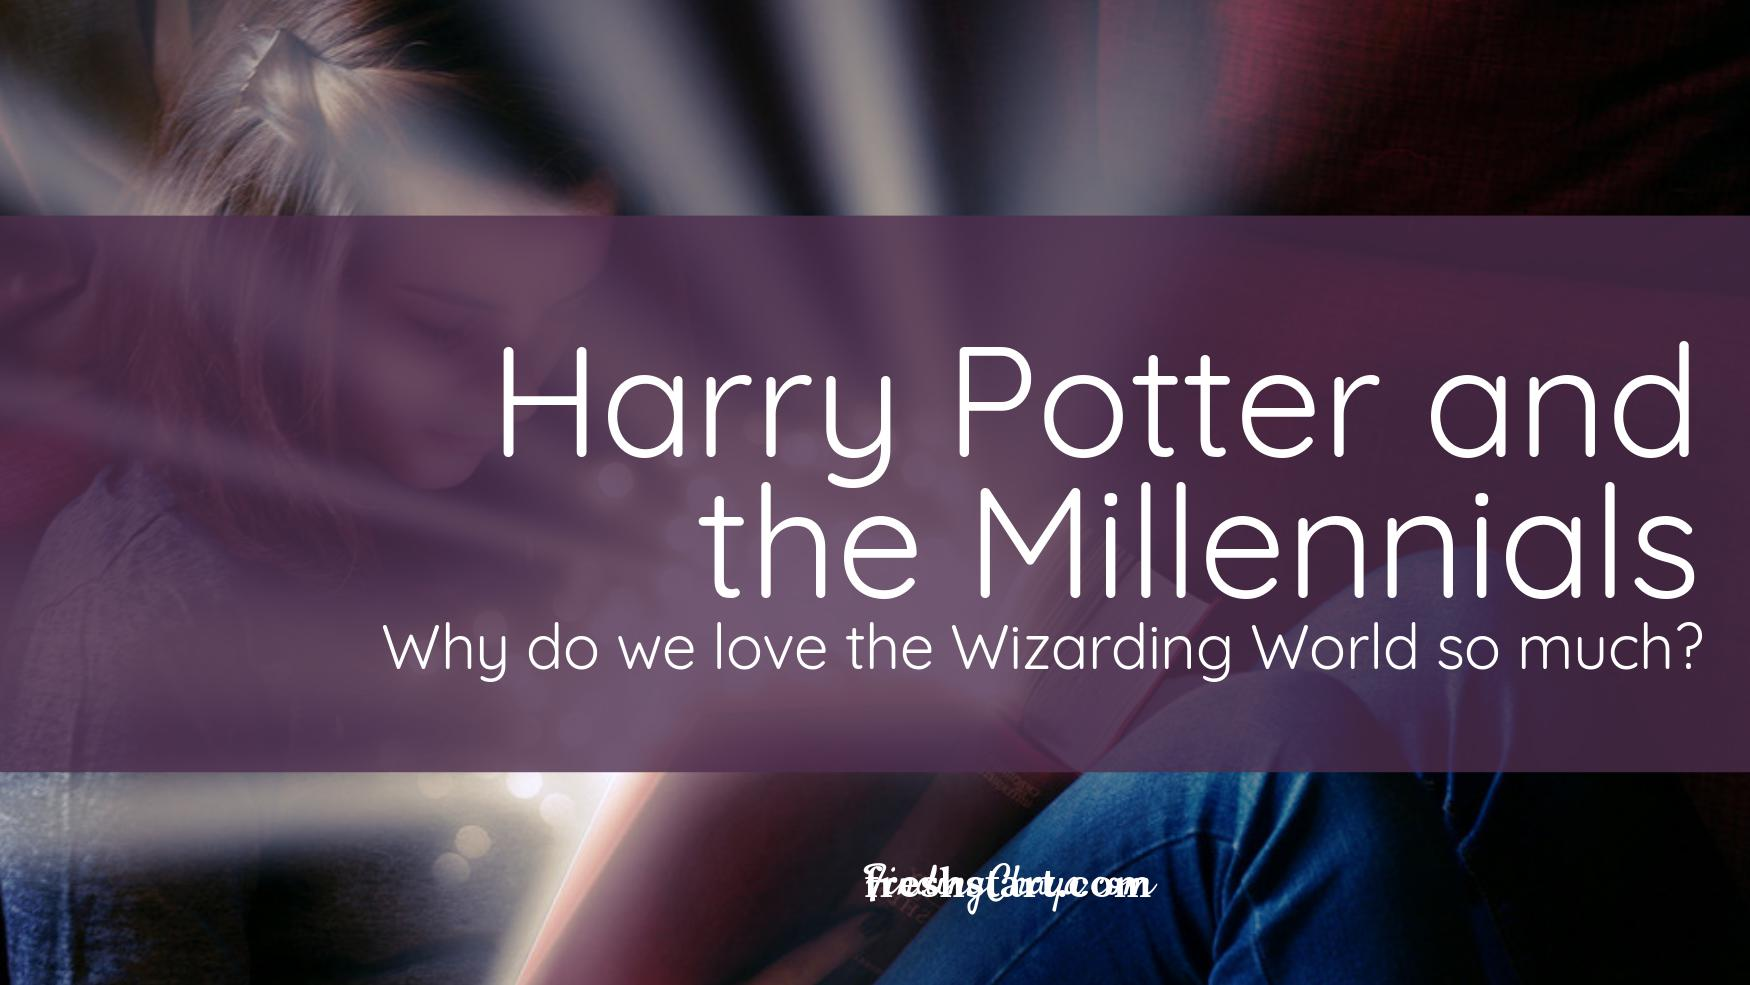 Harry Potter and the Millennials – Why do we love the Wizarding World so much?